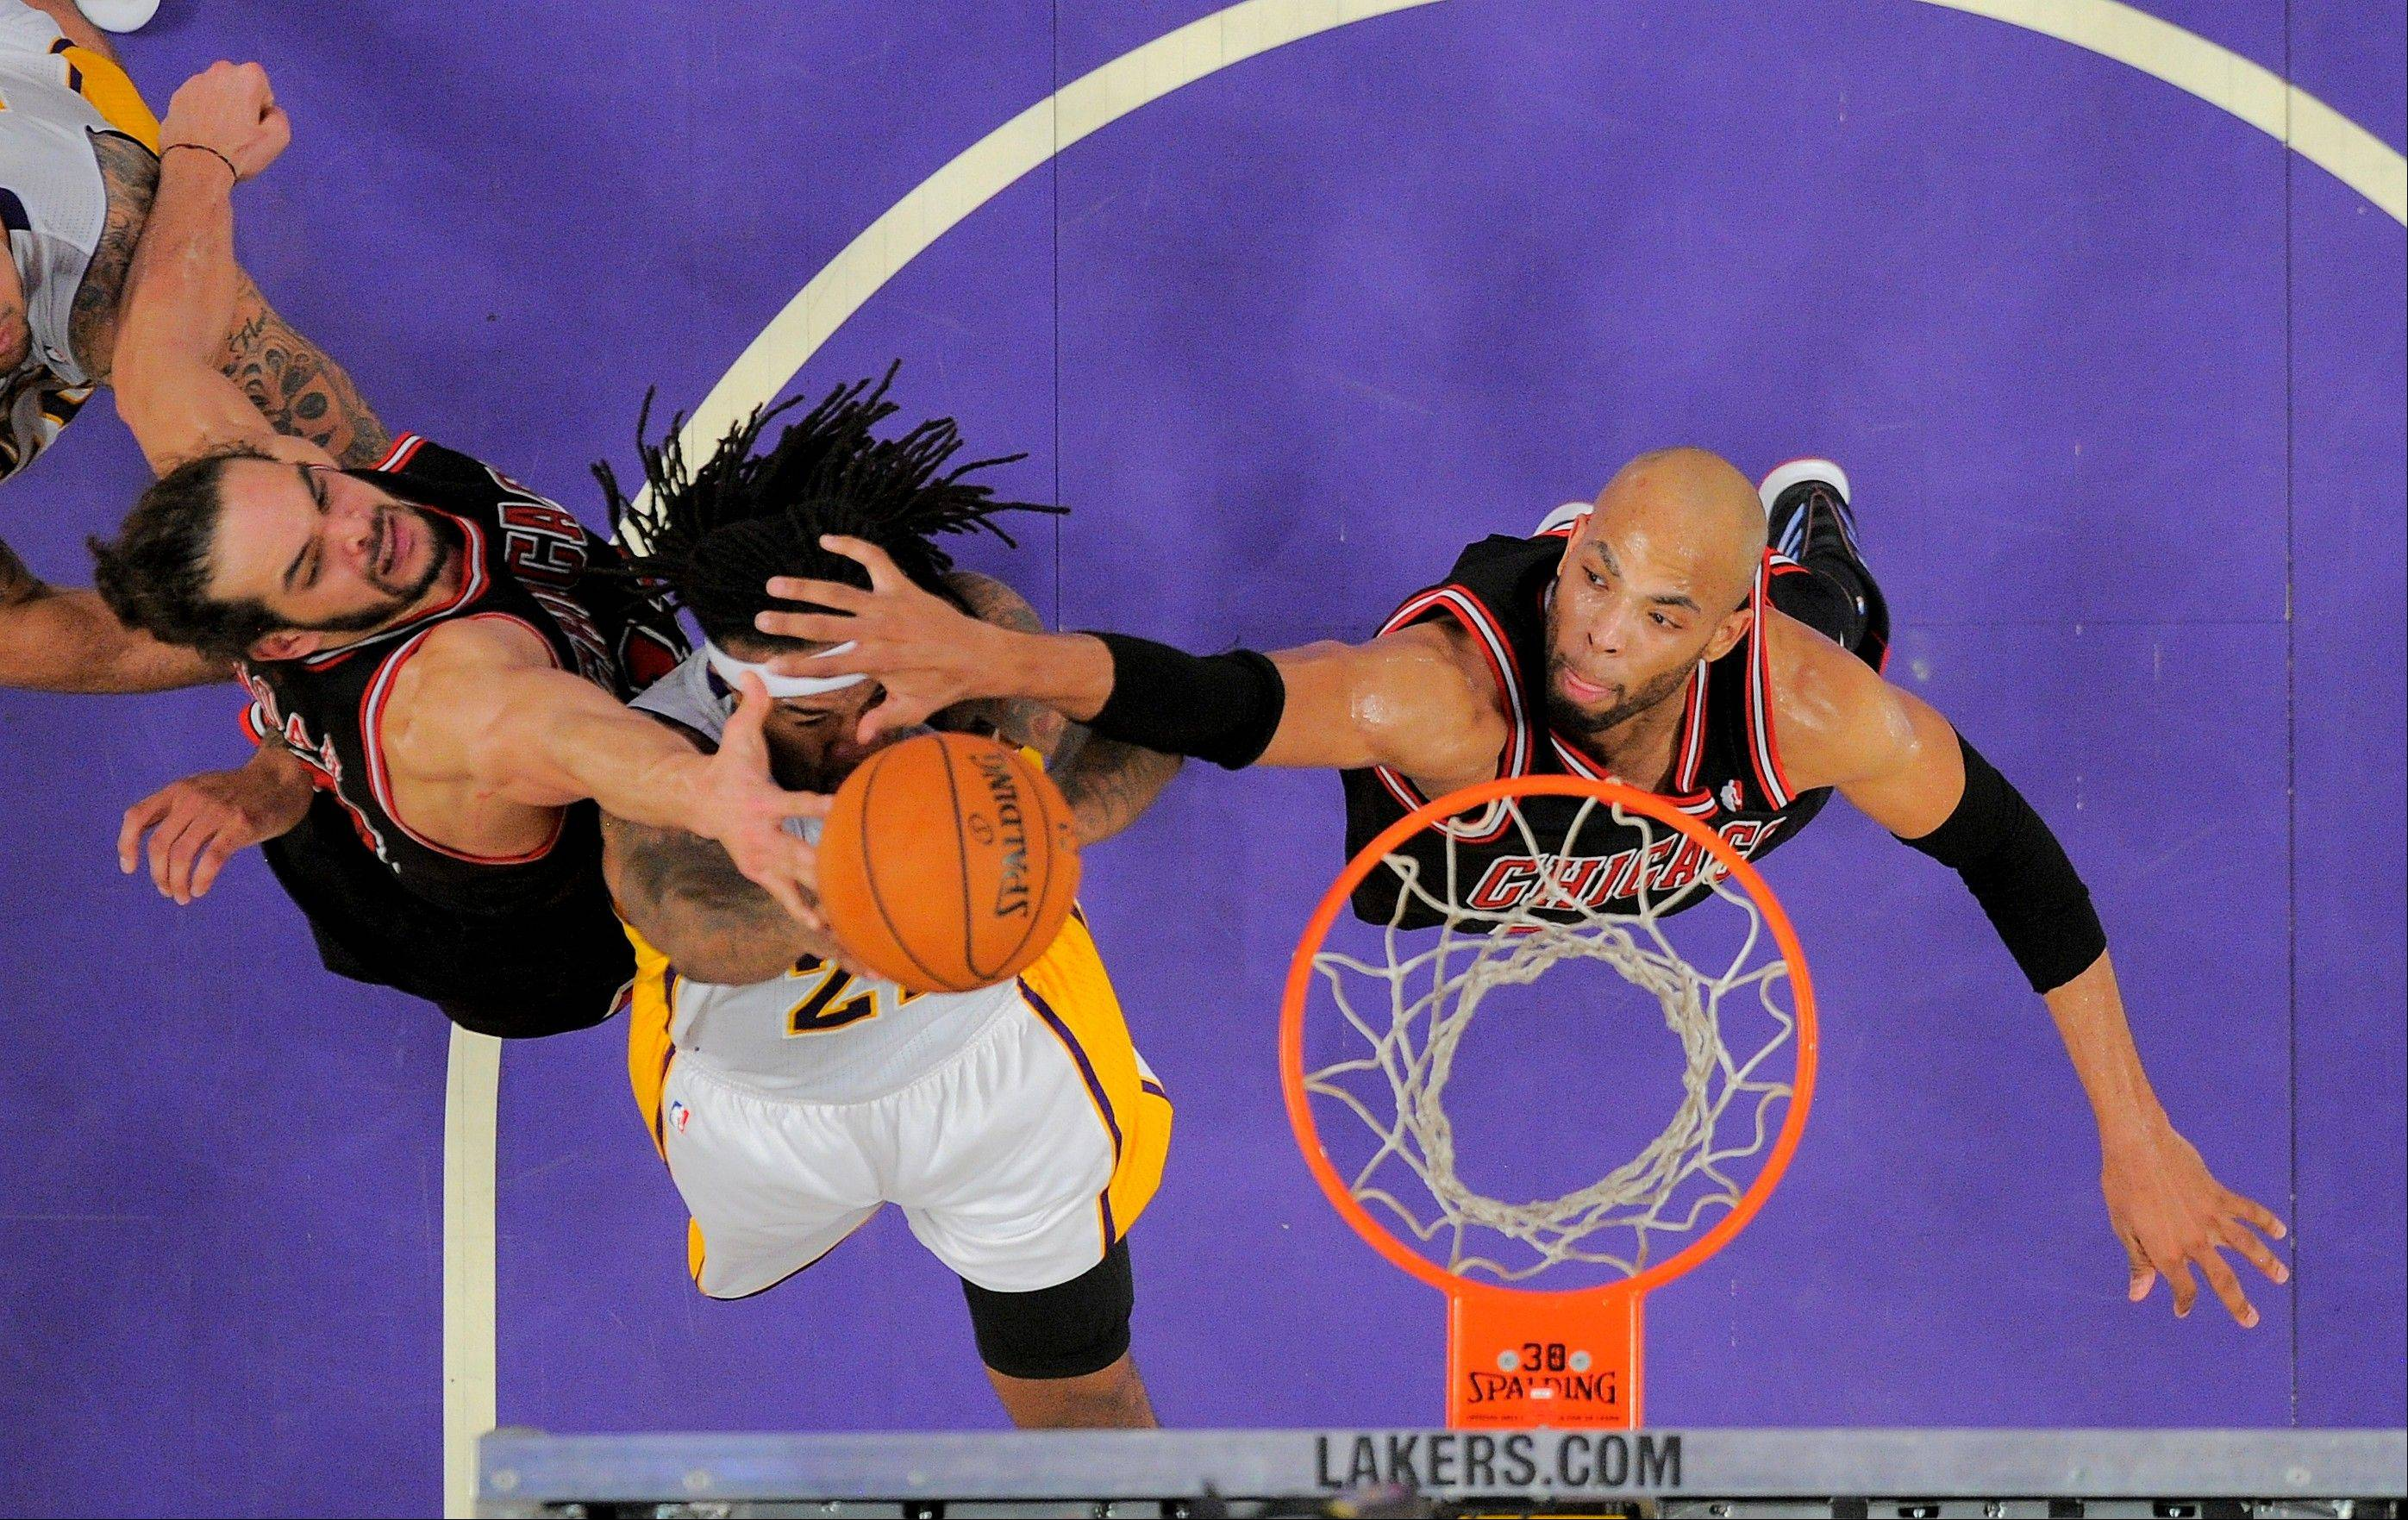 Los Angeles Lakers� Jordan Hill, middle, shoots between Chicago Bulls� Joakim Noah, left, and Taj Gibson during the first half of an NBA basketball game in Los Angeles, Sunday, Feb. 9, 2014.